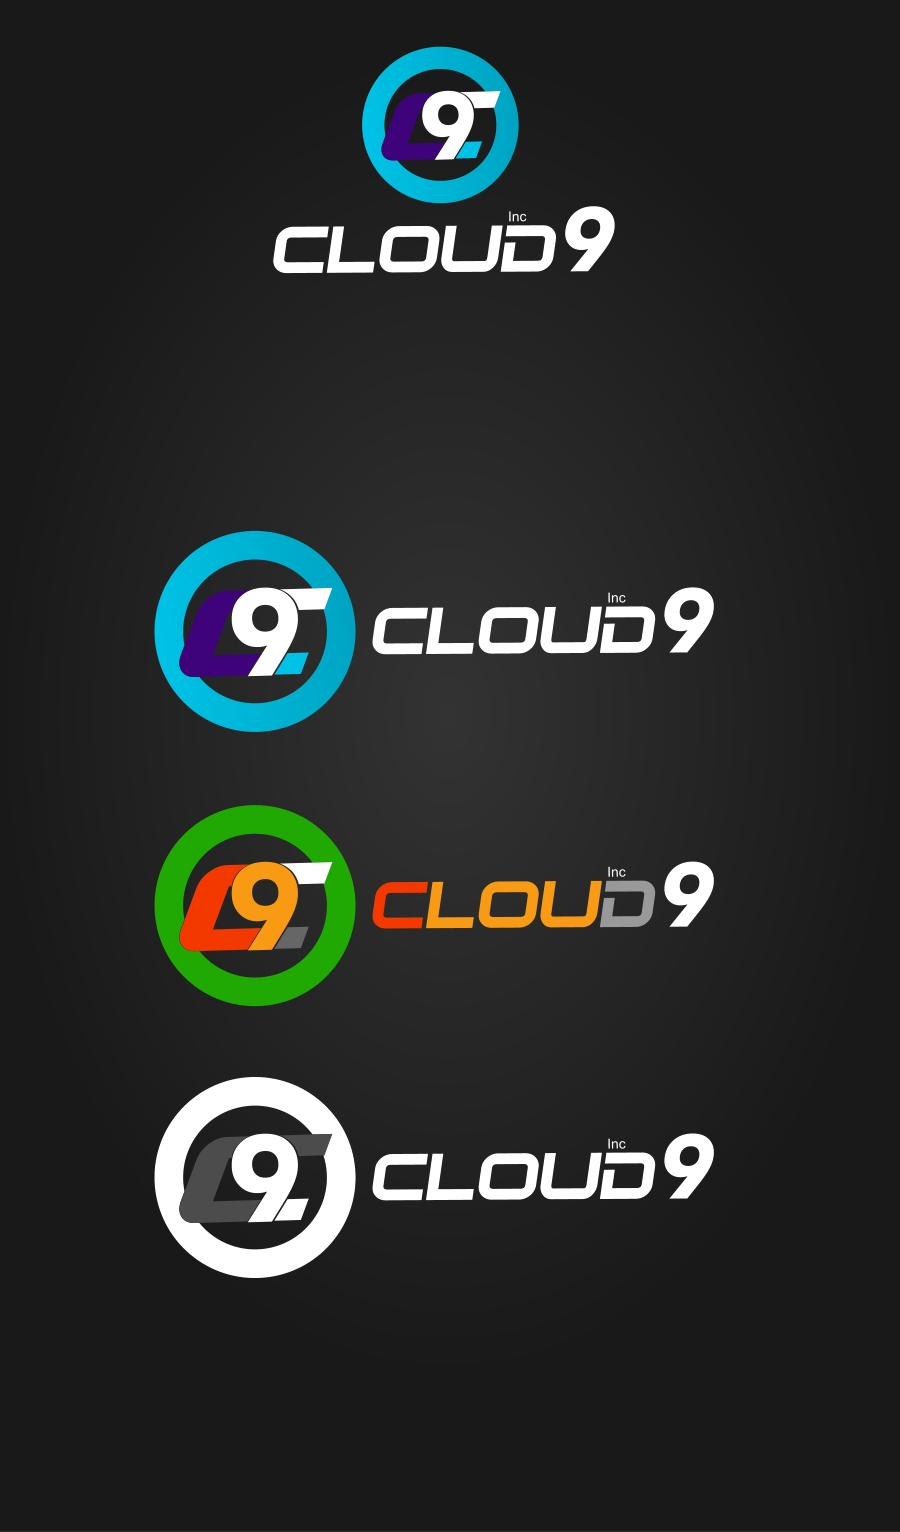 Logo Design by Private User - Entry No. 92 in the Logo Design Contest Unique Logo Design Wanted for Cloud 9 Inc.